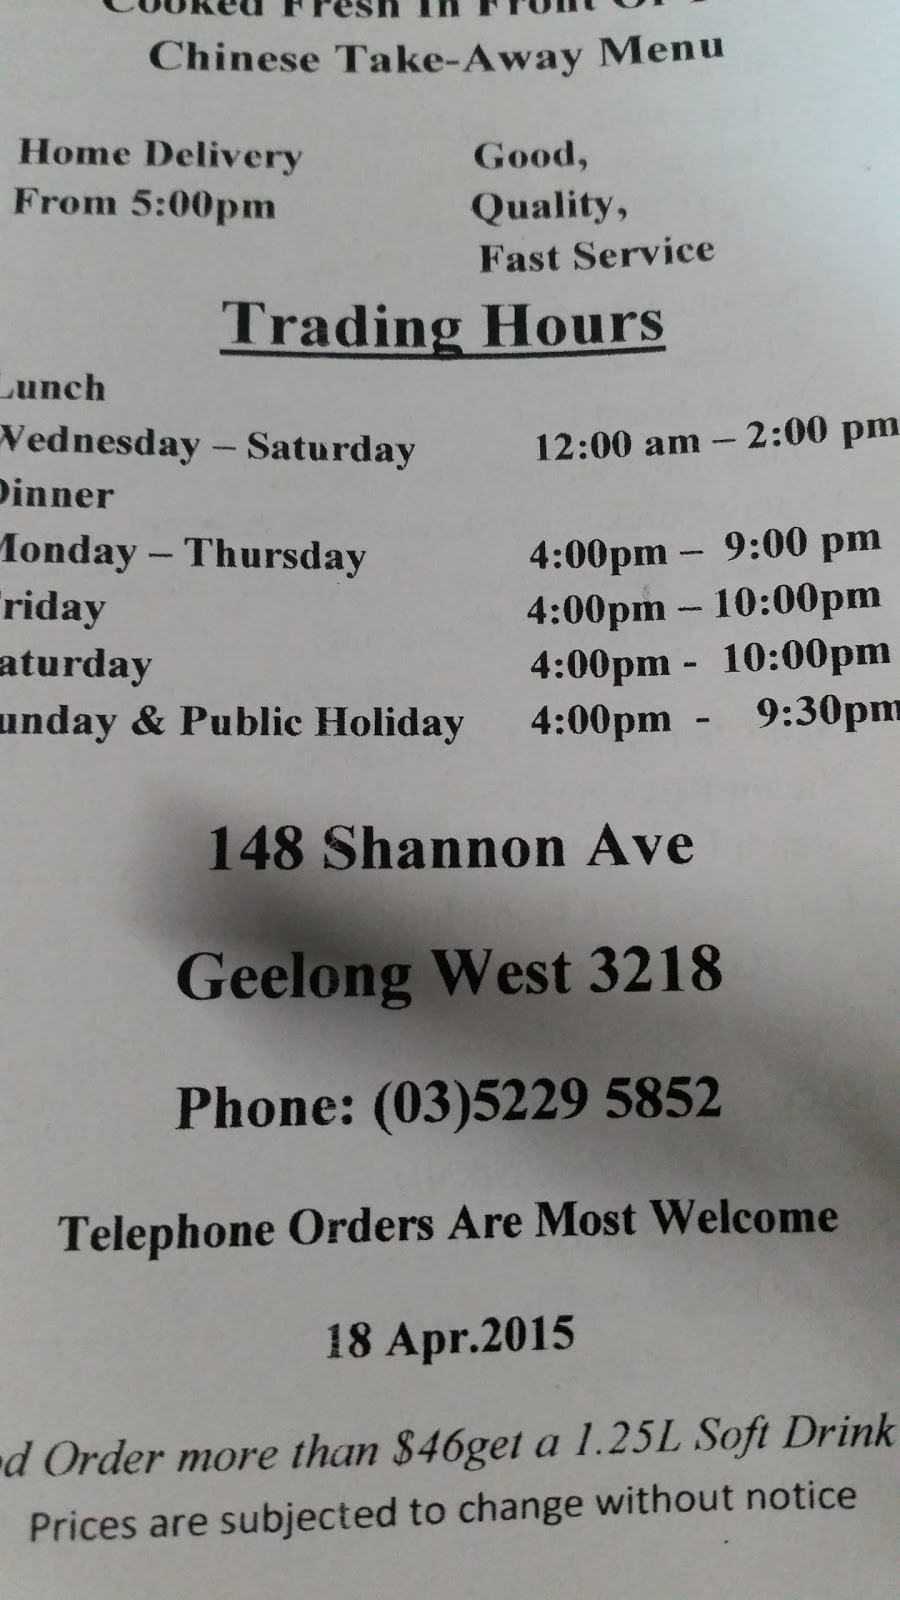 Poons & Wong Chinese Kitchen | meal takeaway | 148 Shannon Ave, Geelong West VIC 3218, Australia | 0352295852 OR +61 3 5229 5852